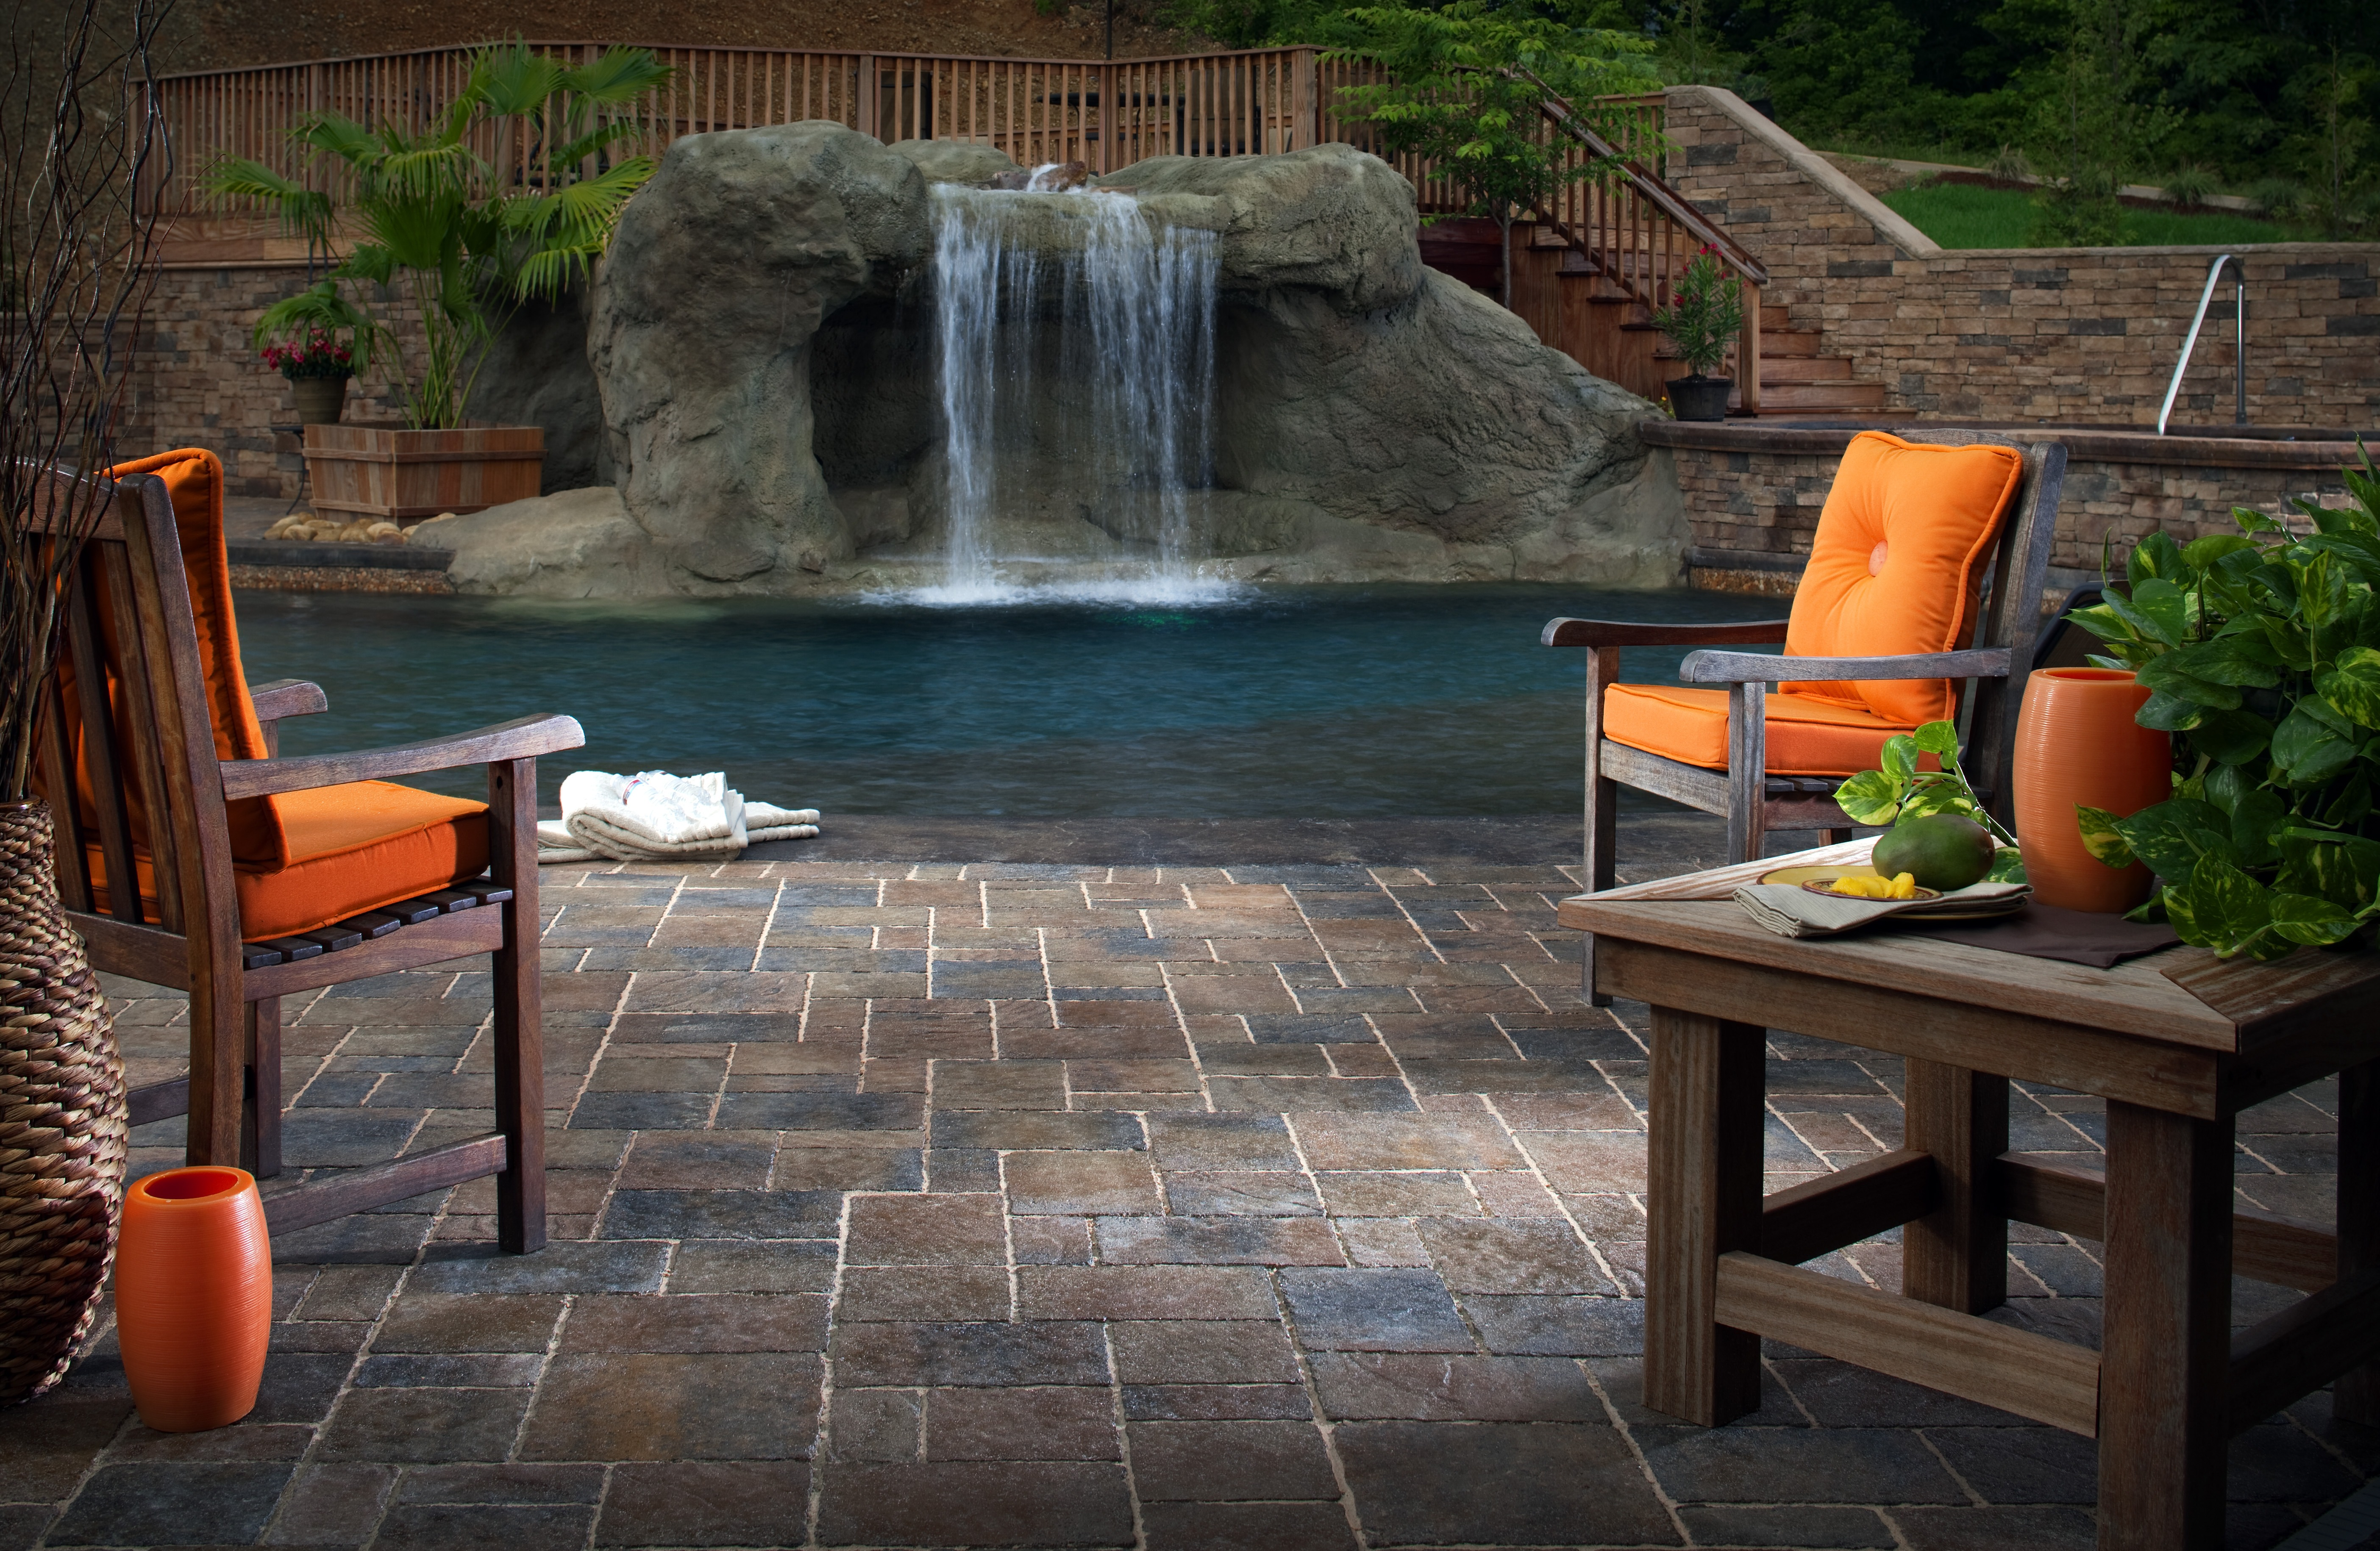 Pool design trends guide ideas inspiration pro tips for Pool design trends